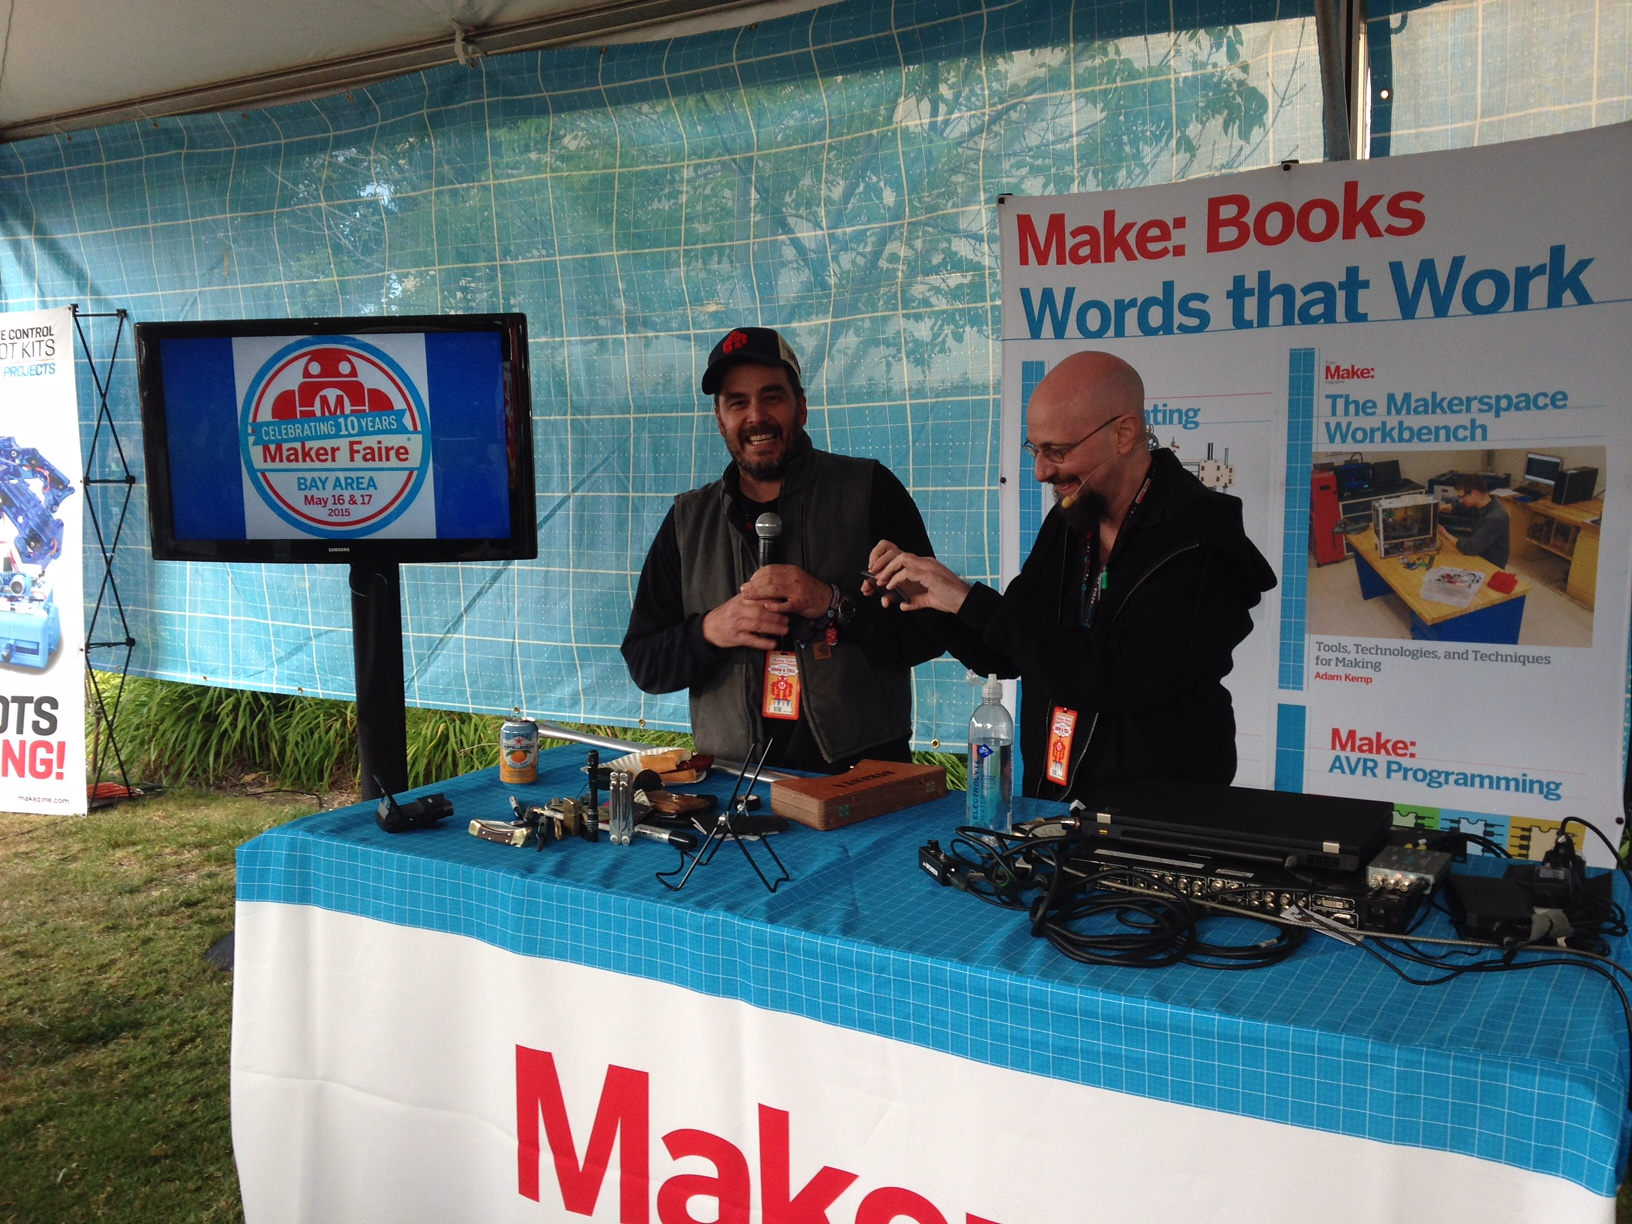 Celebrating Maker Faire Bay Area with Humble Bundle and Make: Books